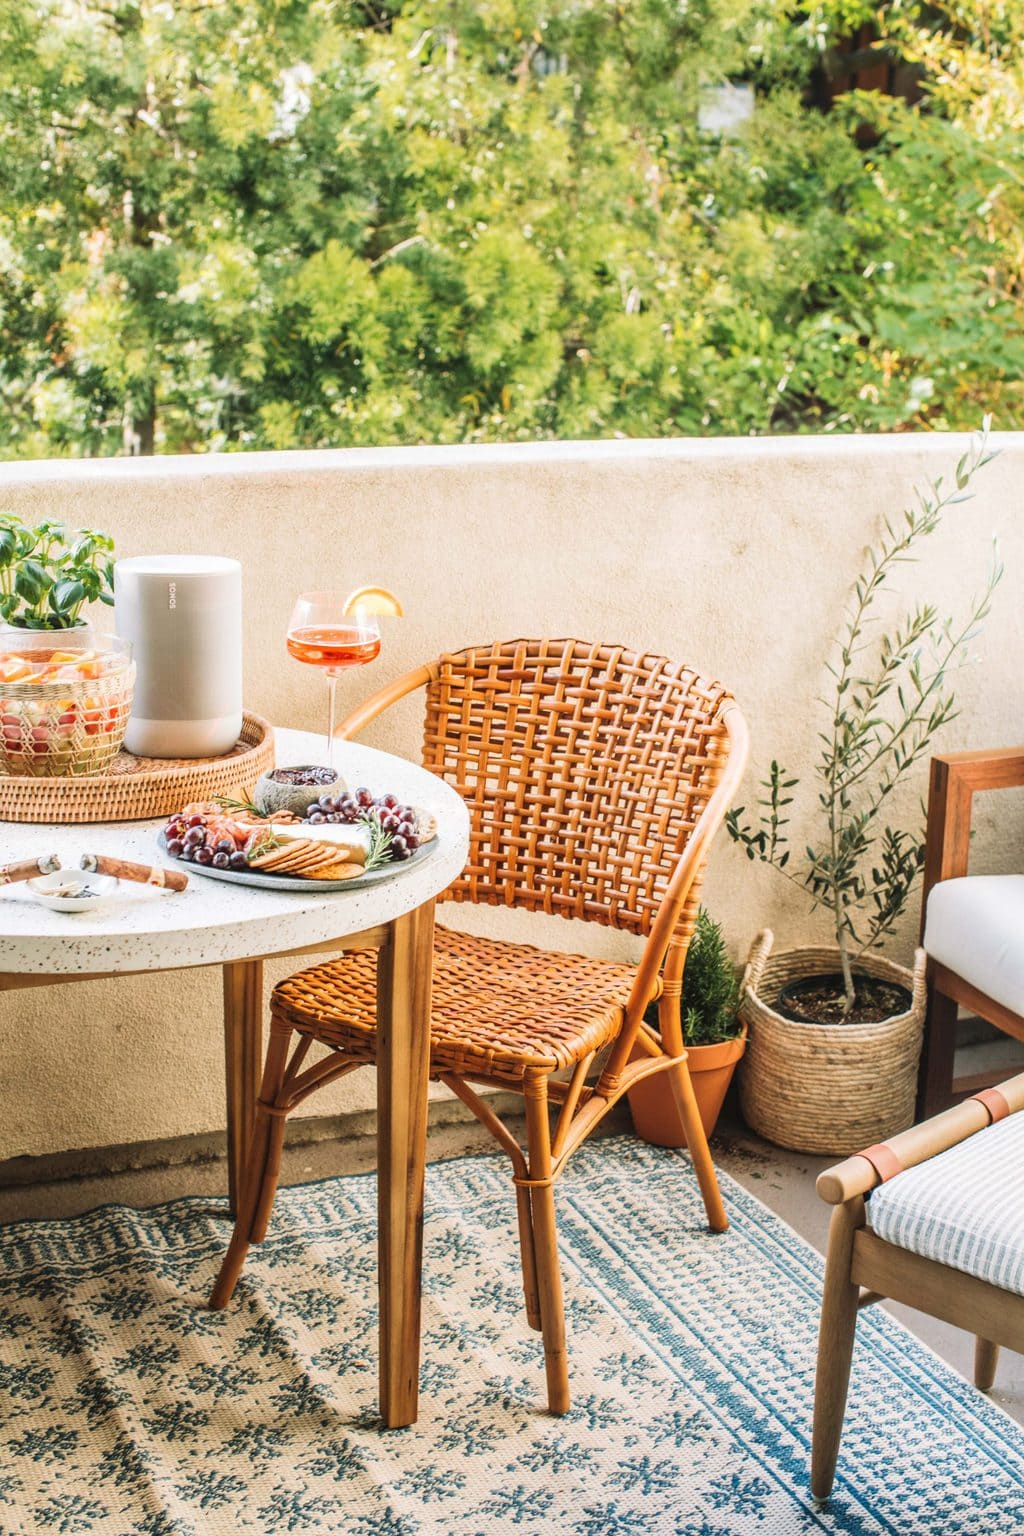 A round dining table with a cheese board and an aperol spritz on top.